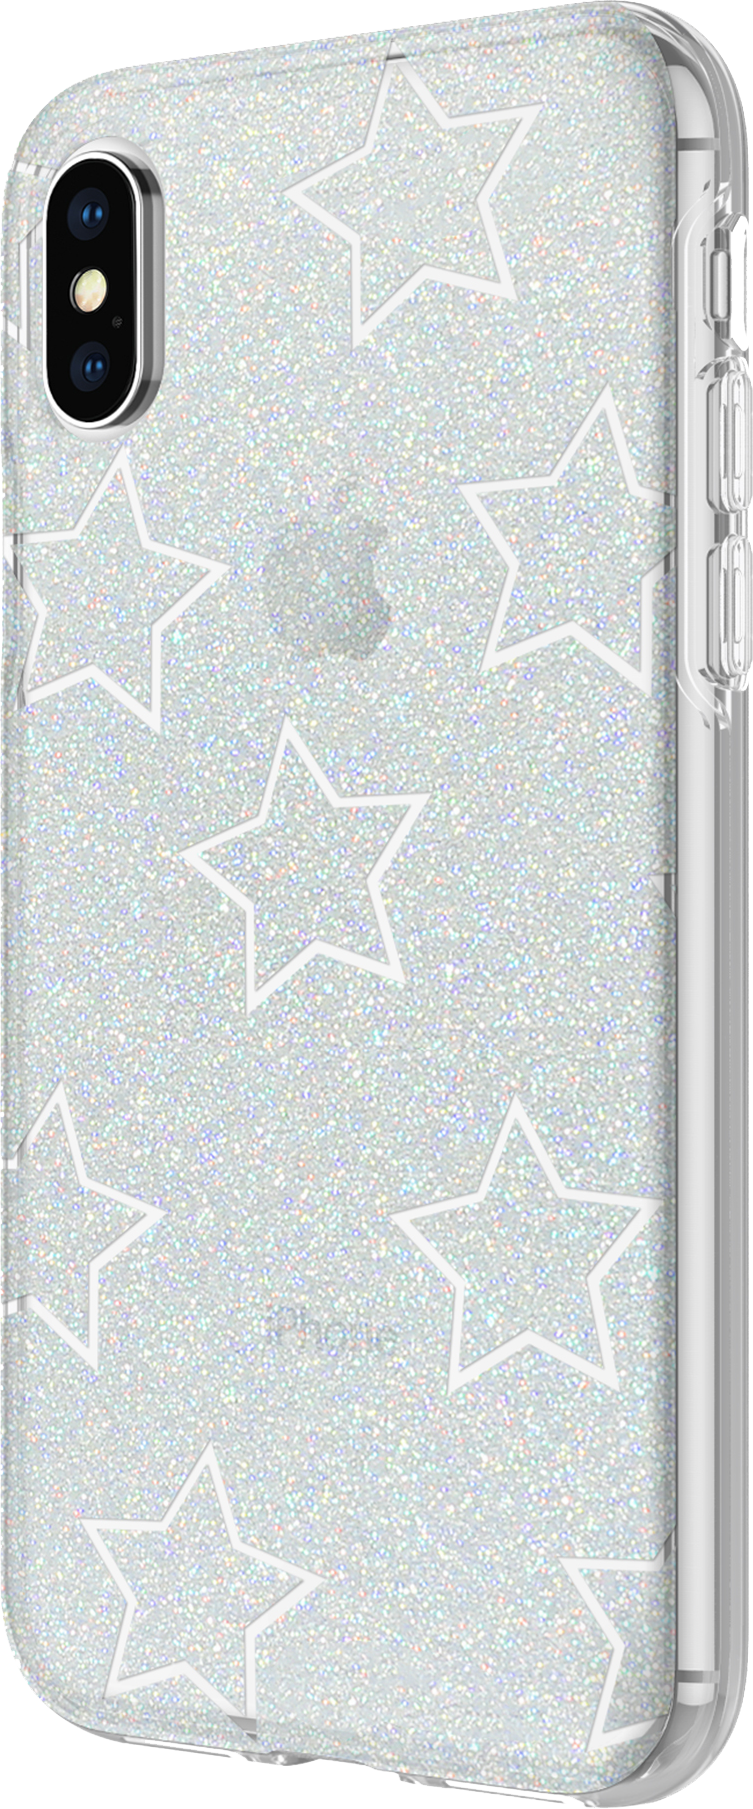 iPhone X Design Case - Glitter Star Cutout